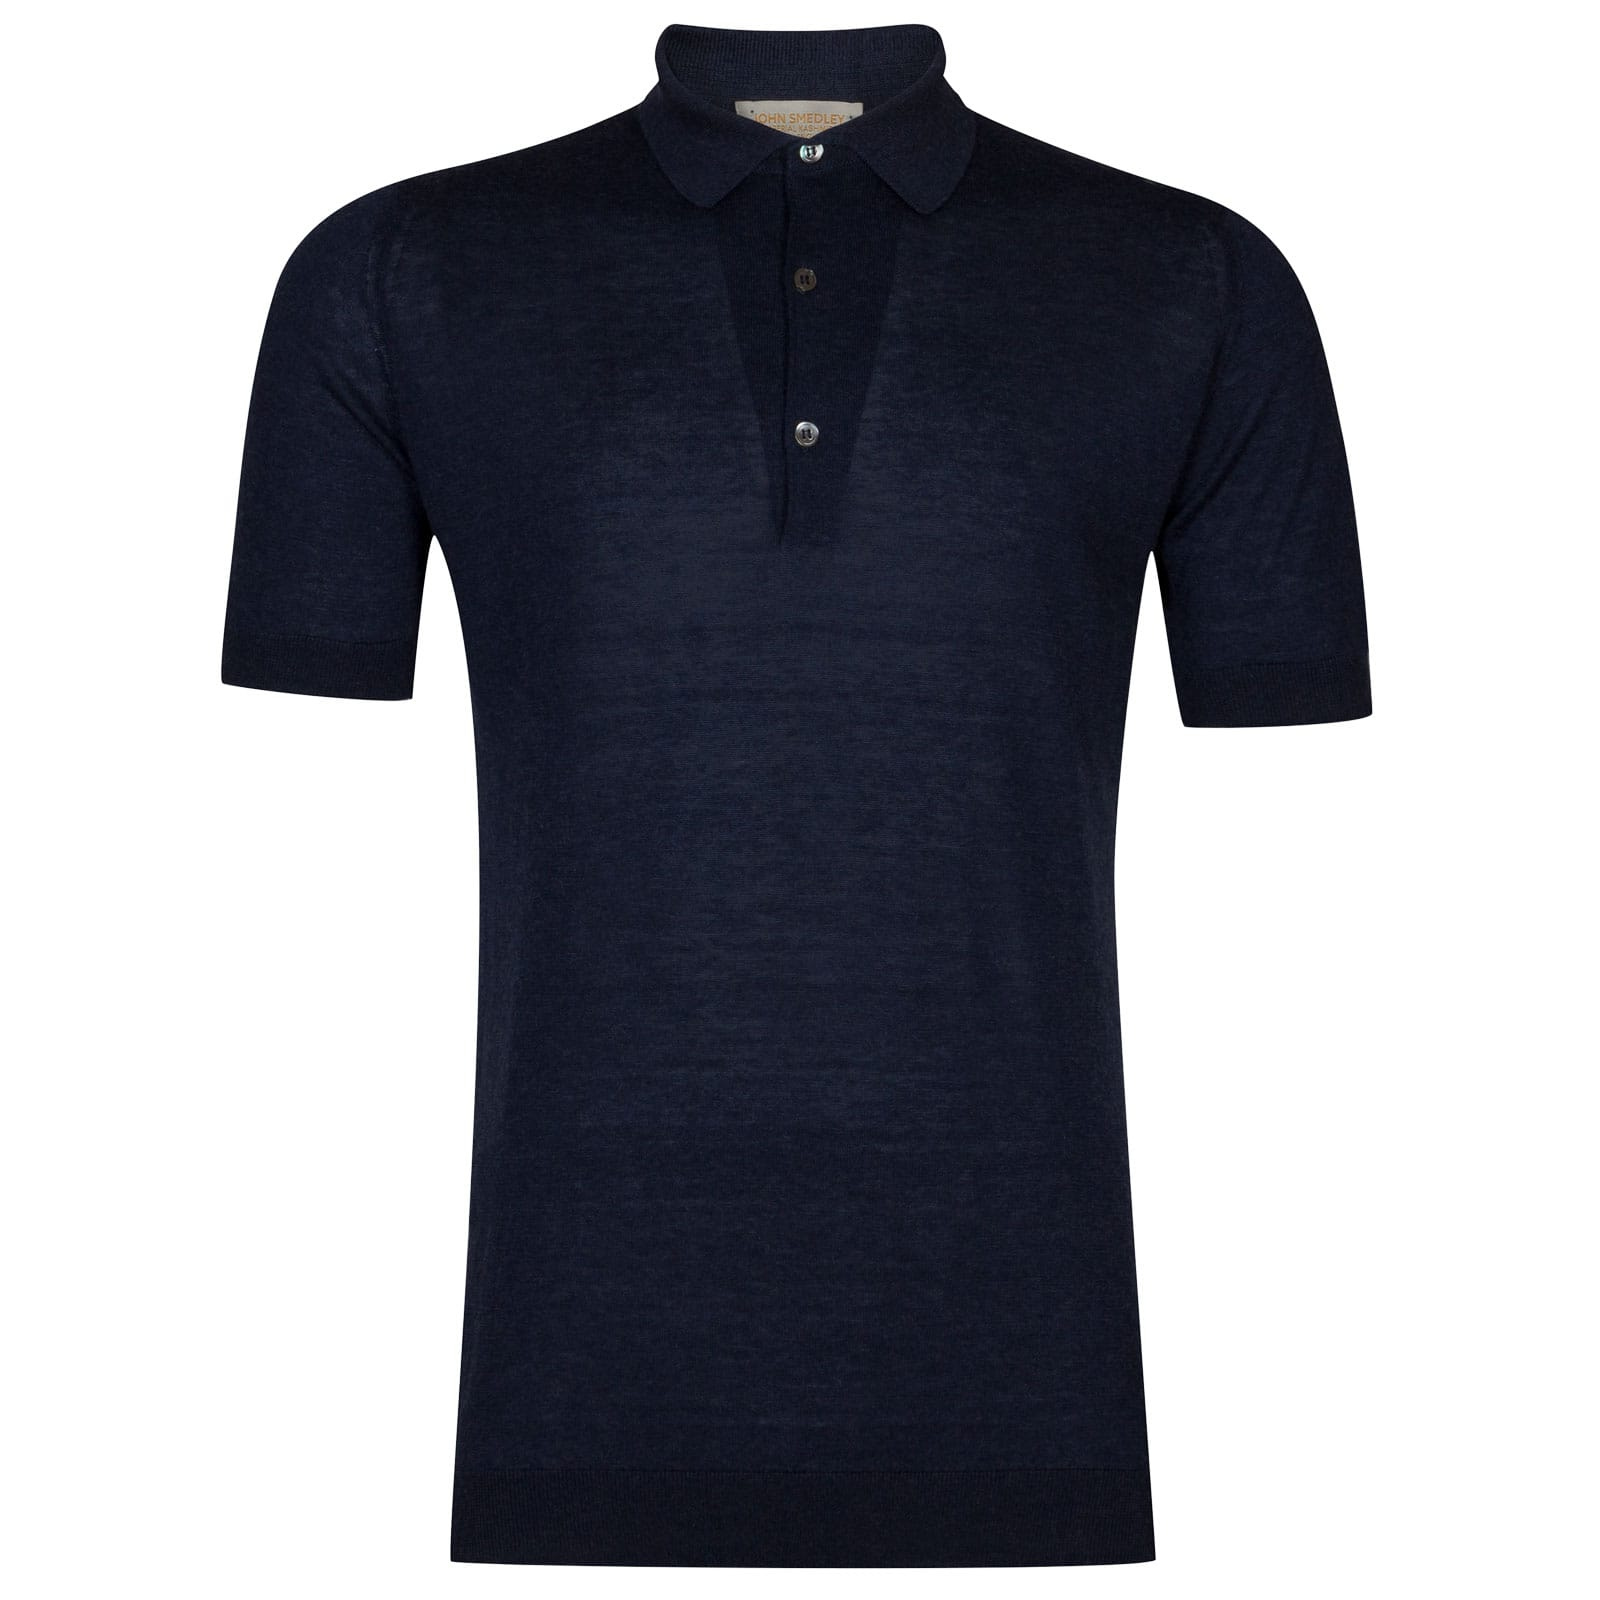 John Smedley Haddon Sea Island Cotton and Cashmere Shirt in Indigo-XXL